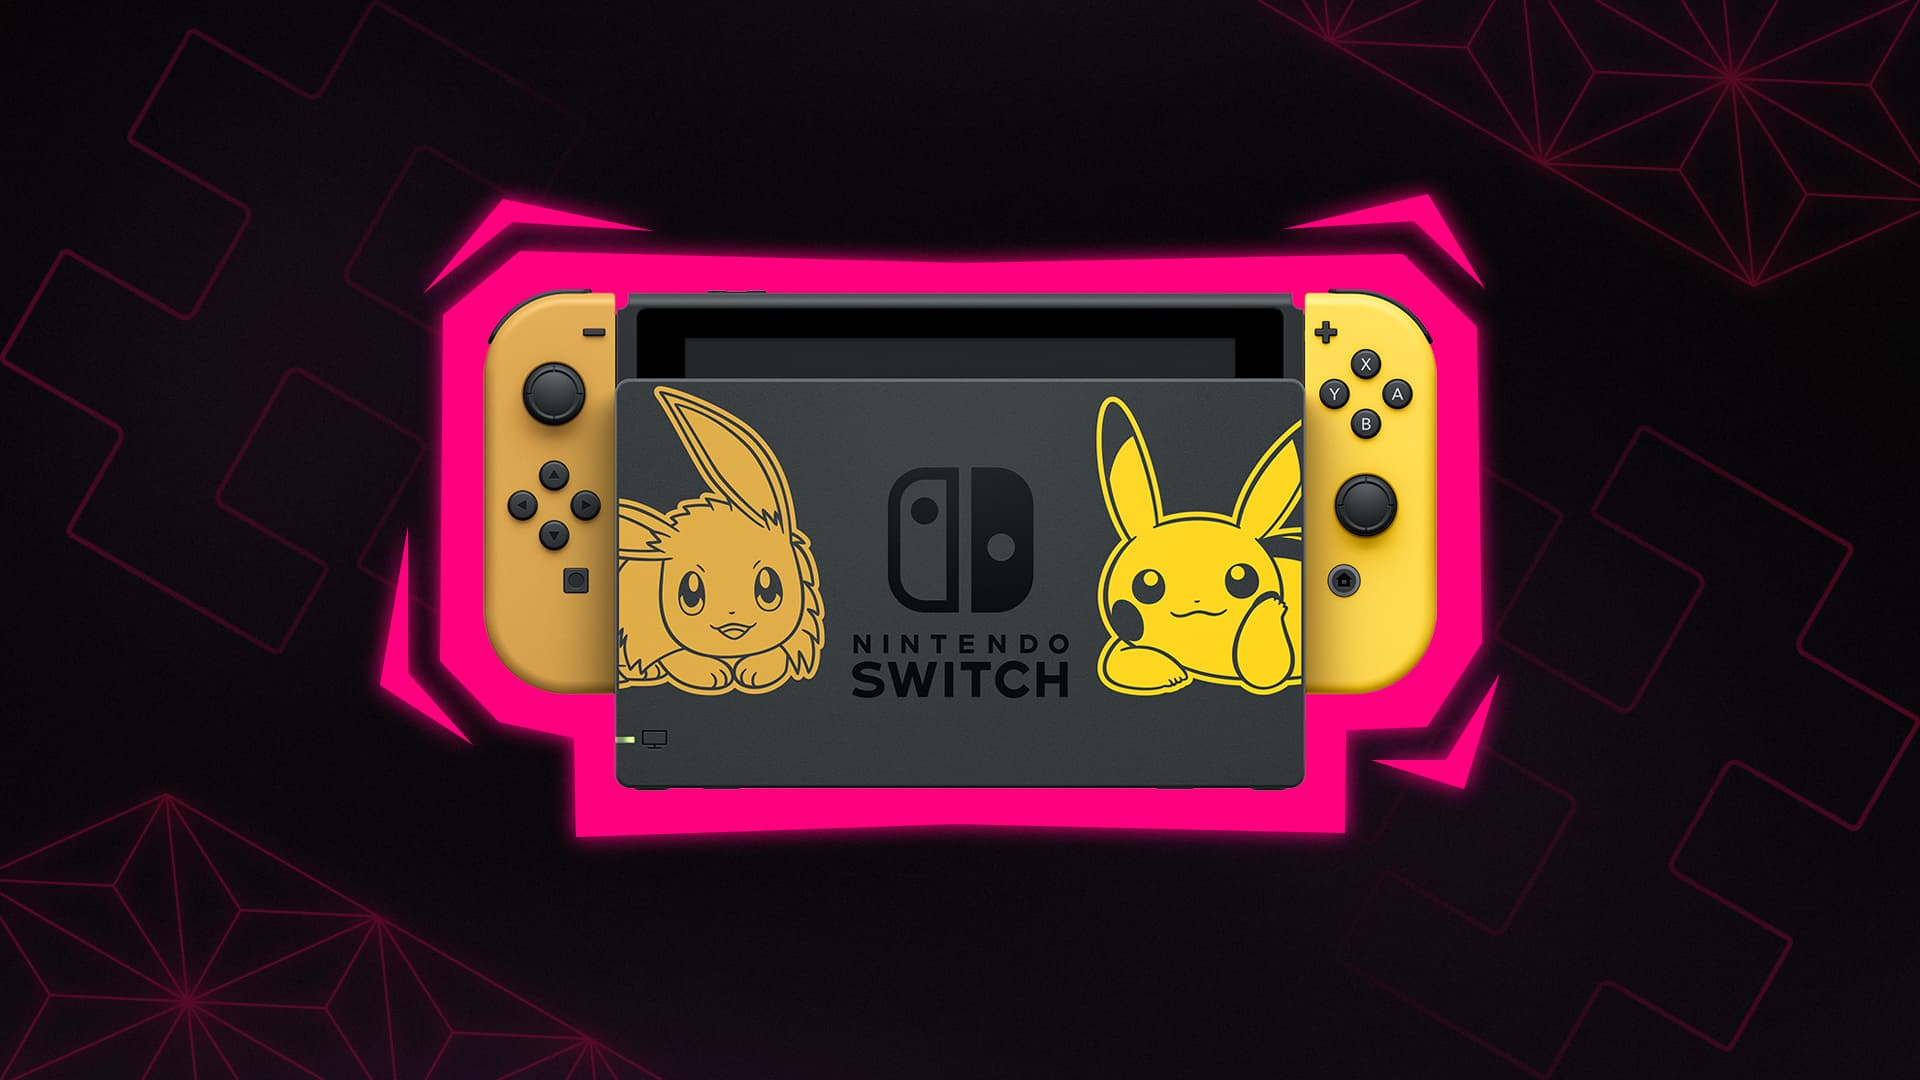 Nintendo Switch Owner's Guide